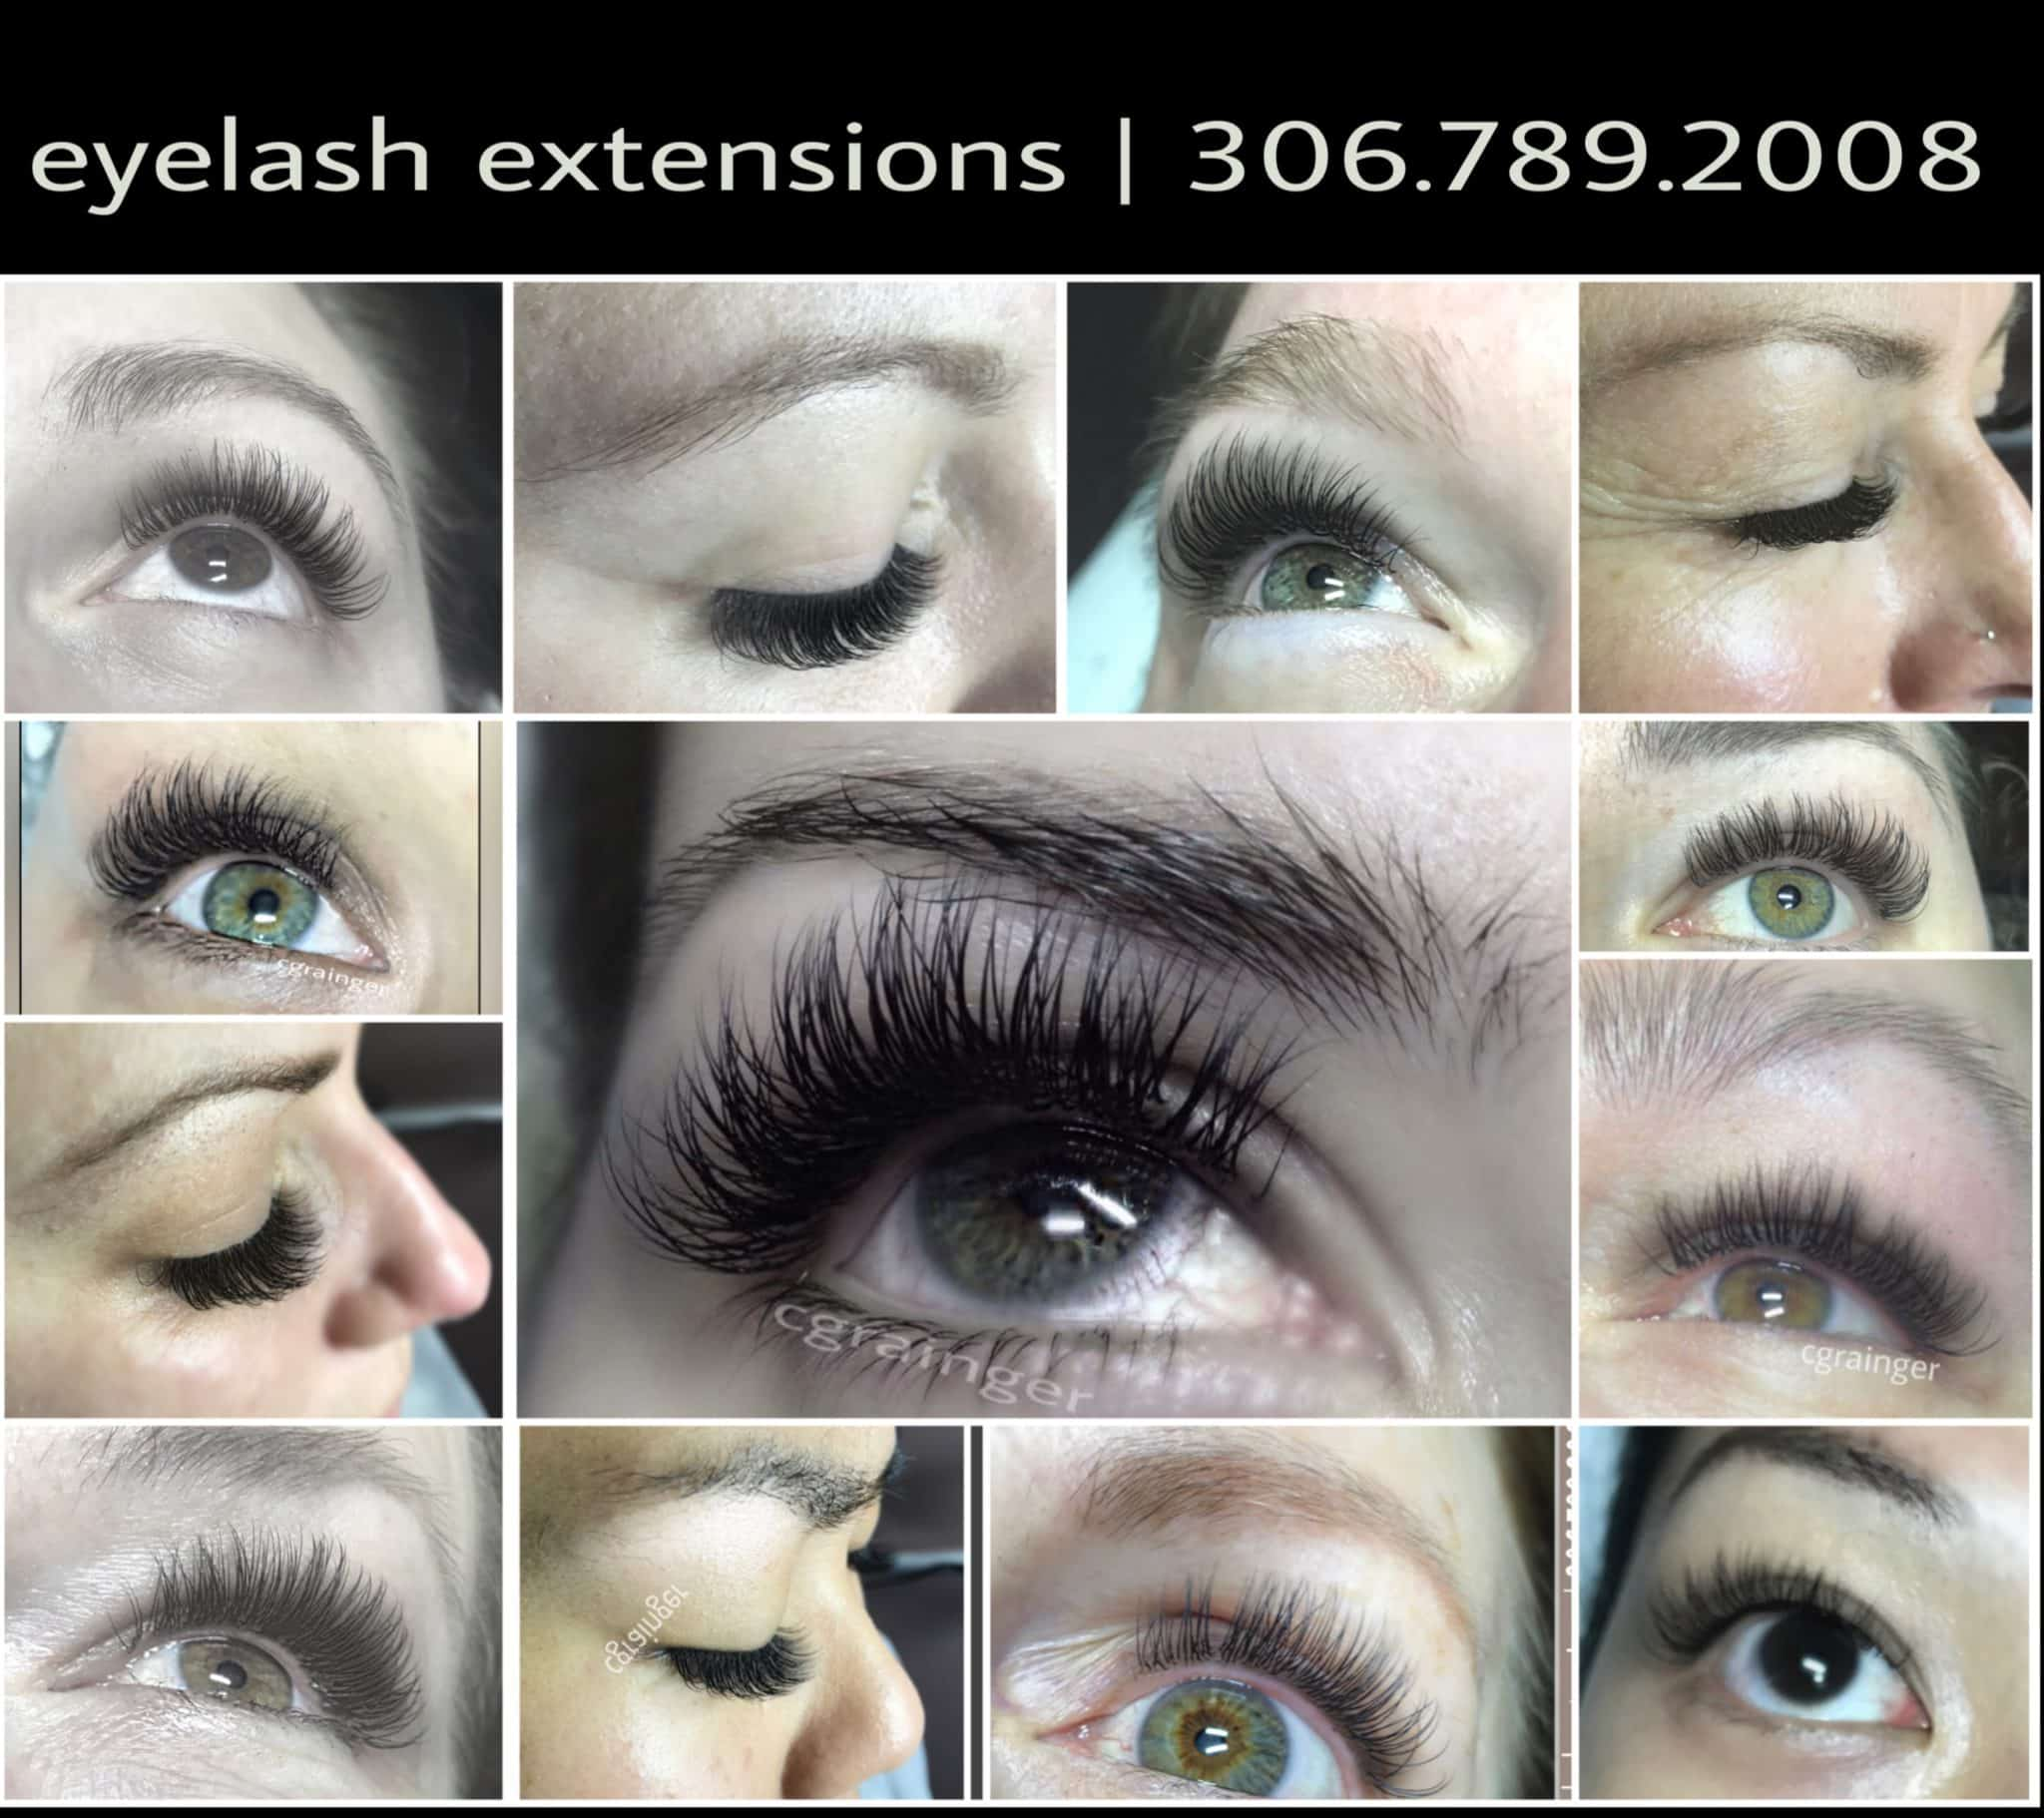 Specializing in Eyelash Extensions Regina Client Reviews